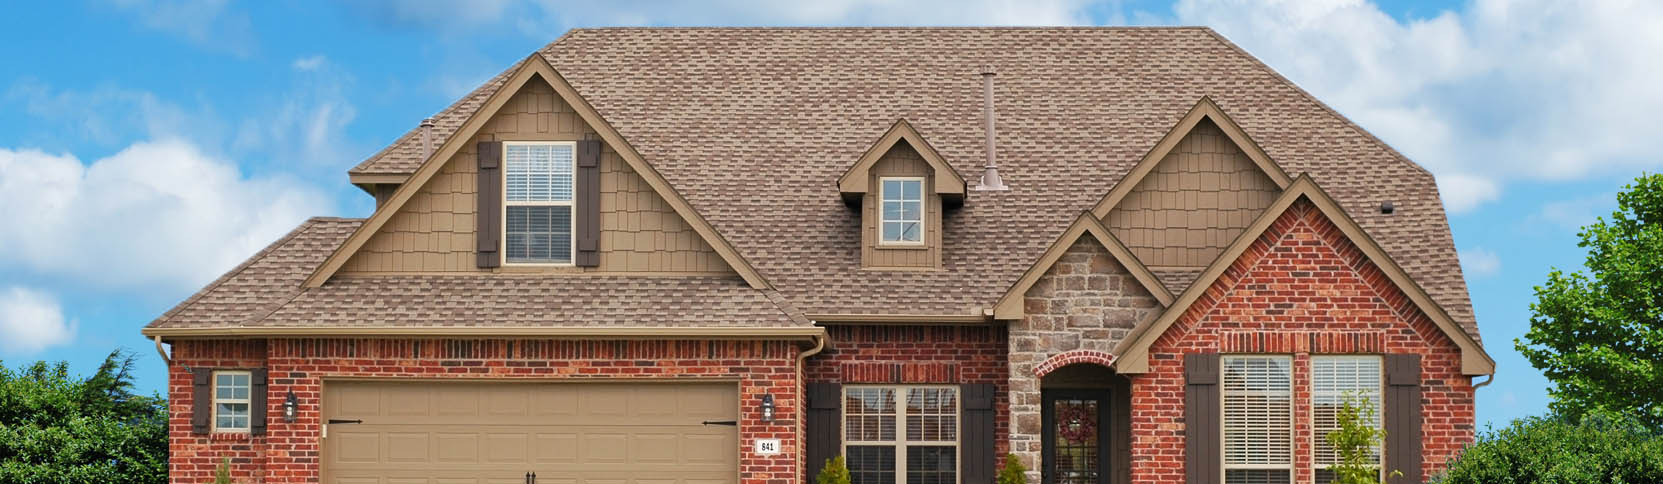 What Type Of Roof To I Need For My Business?